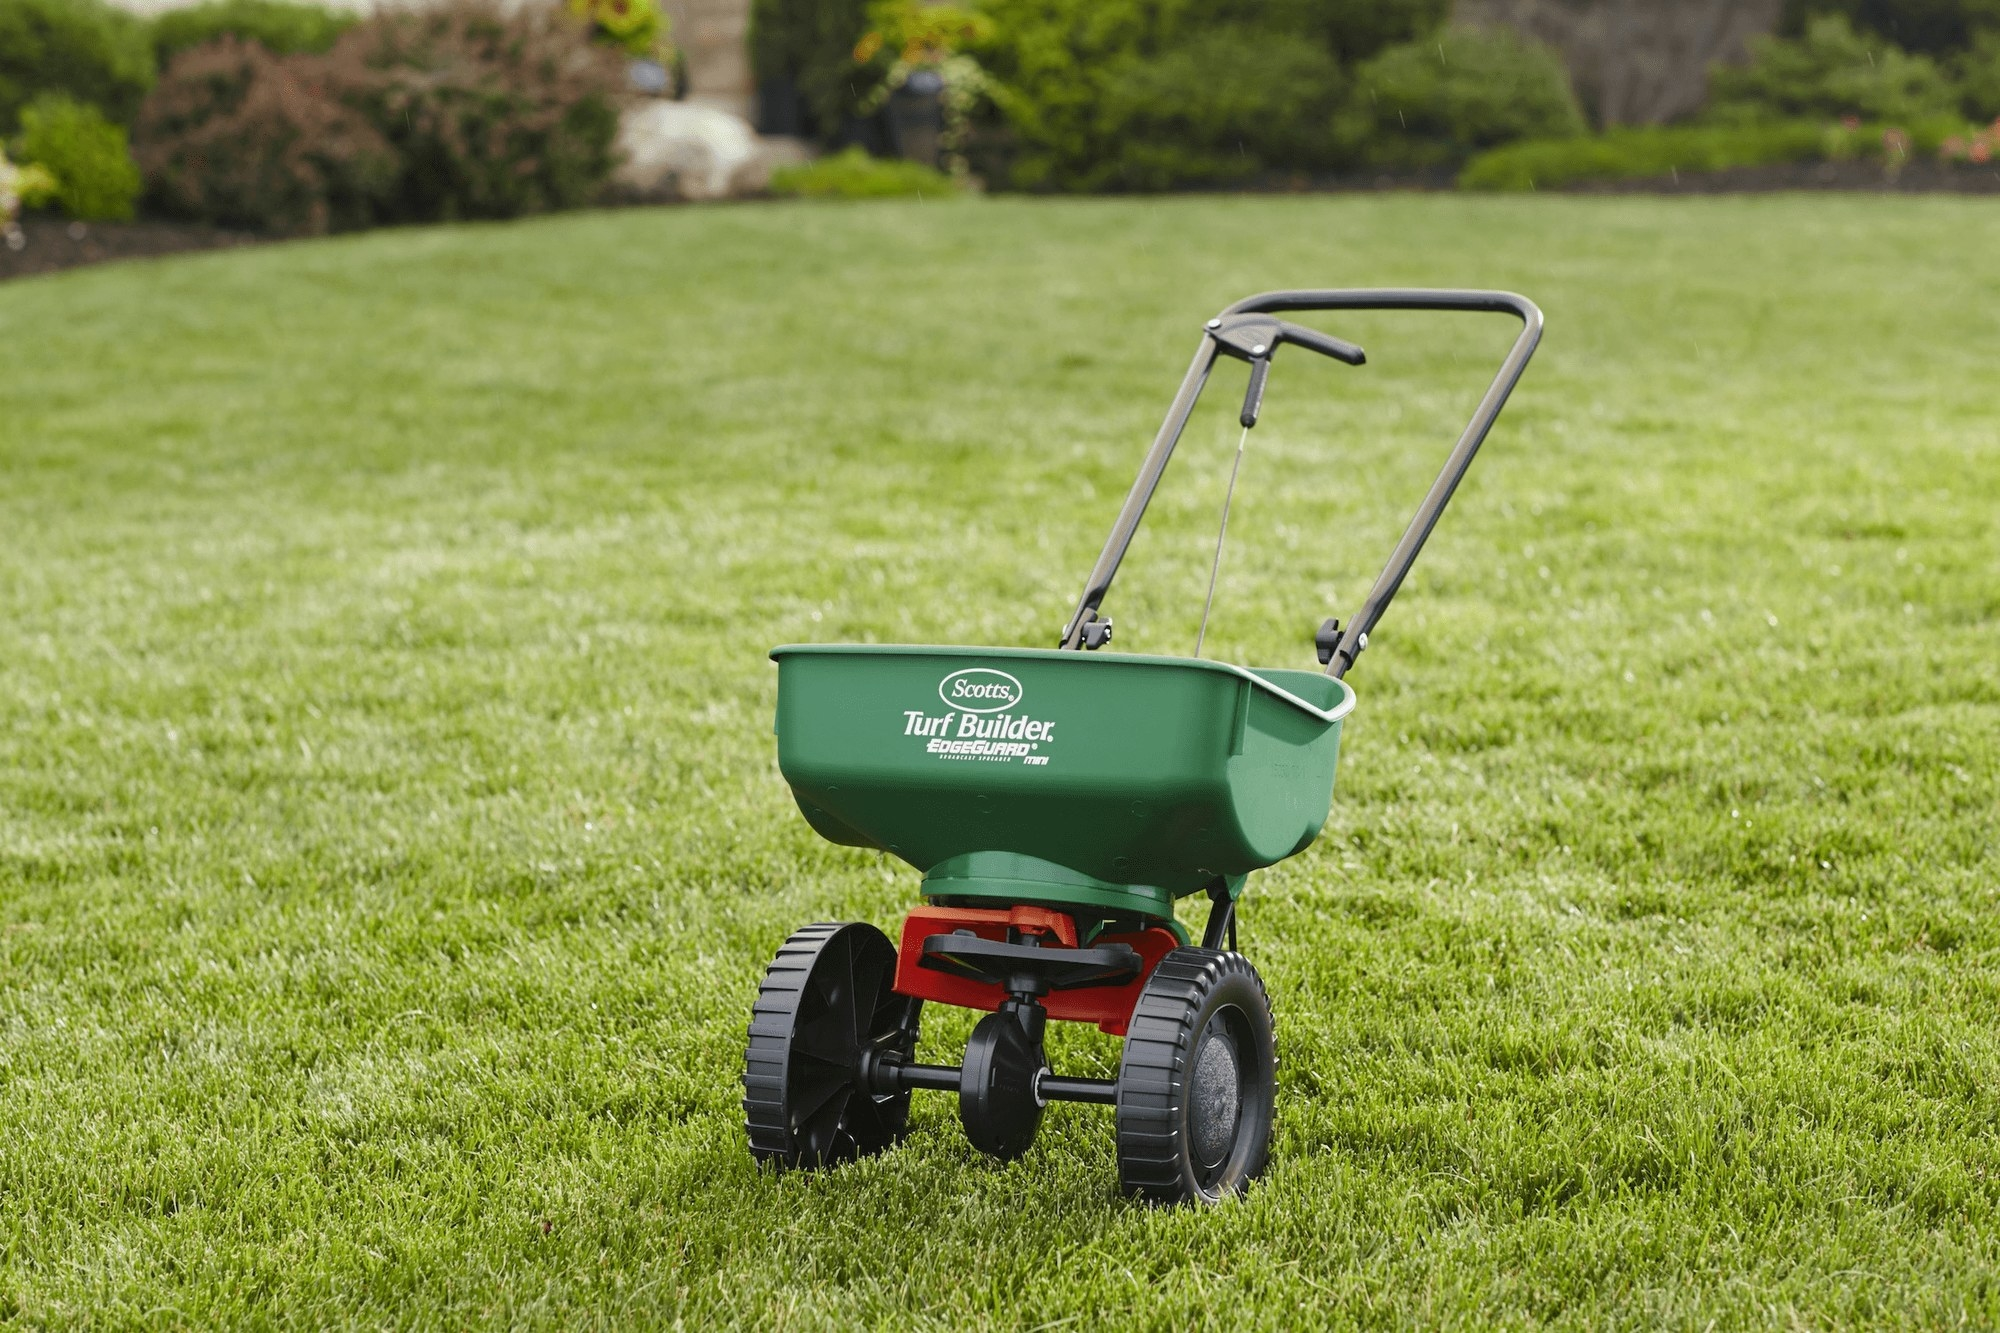 A green spreader with black wheels and handle and red accents